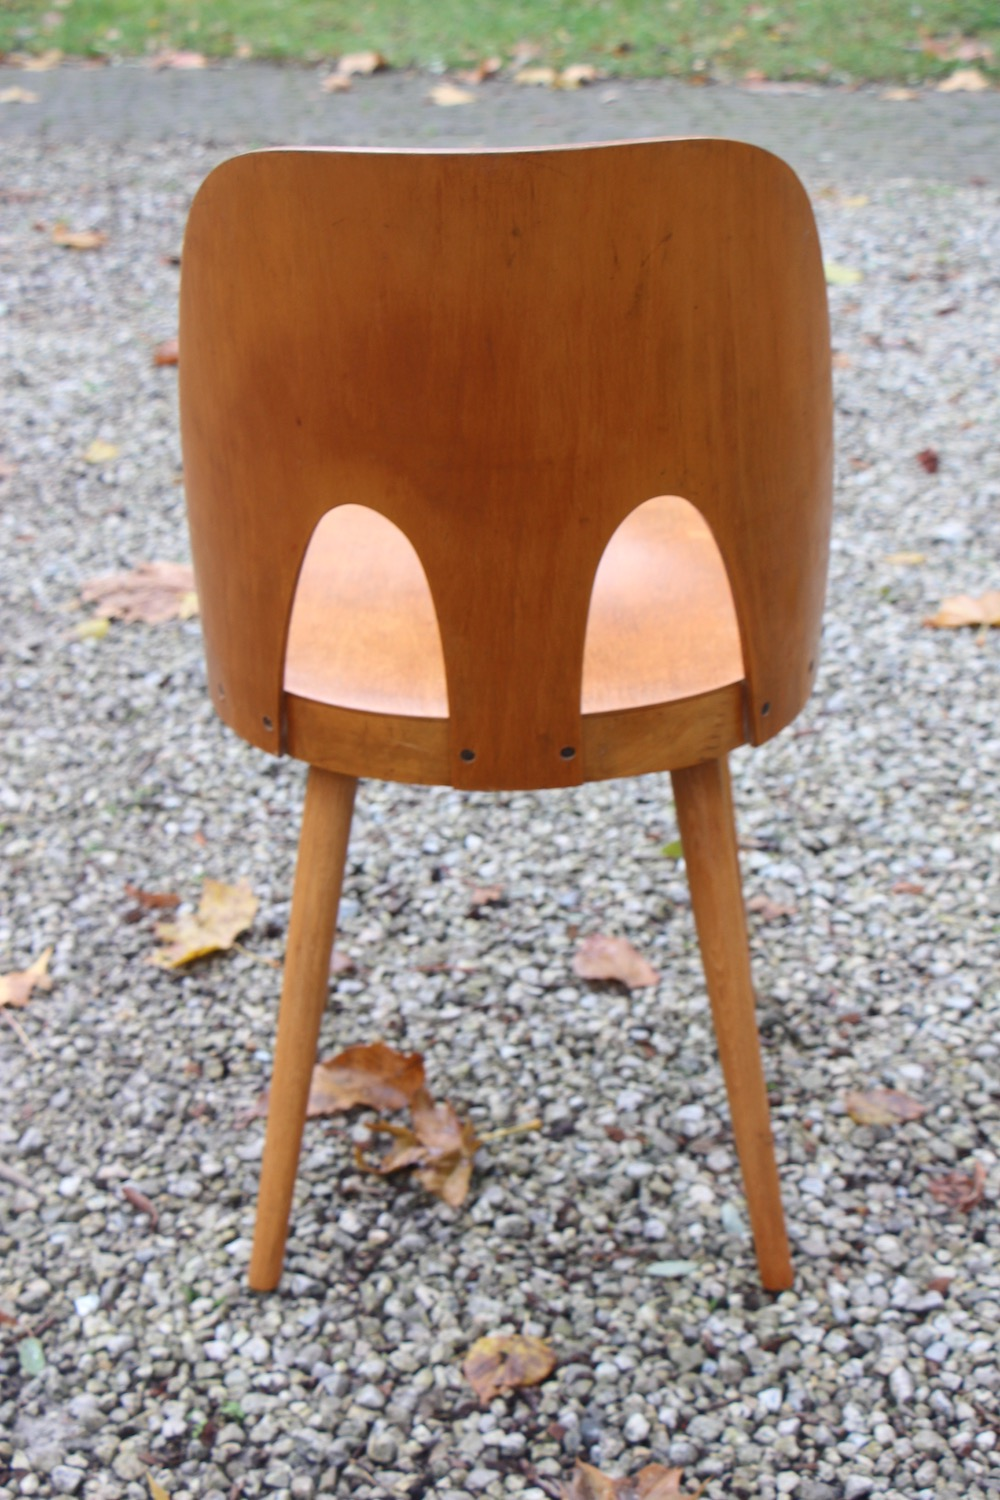 Oswald Haerdtl chair, double bow, vintage chairs, Tatra production